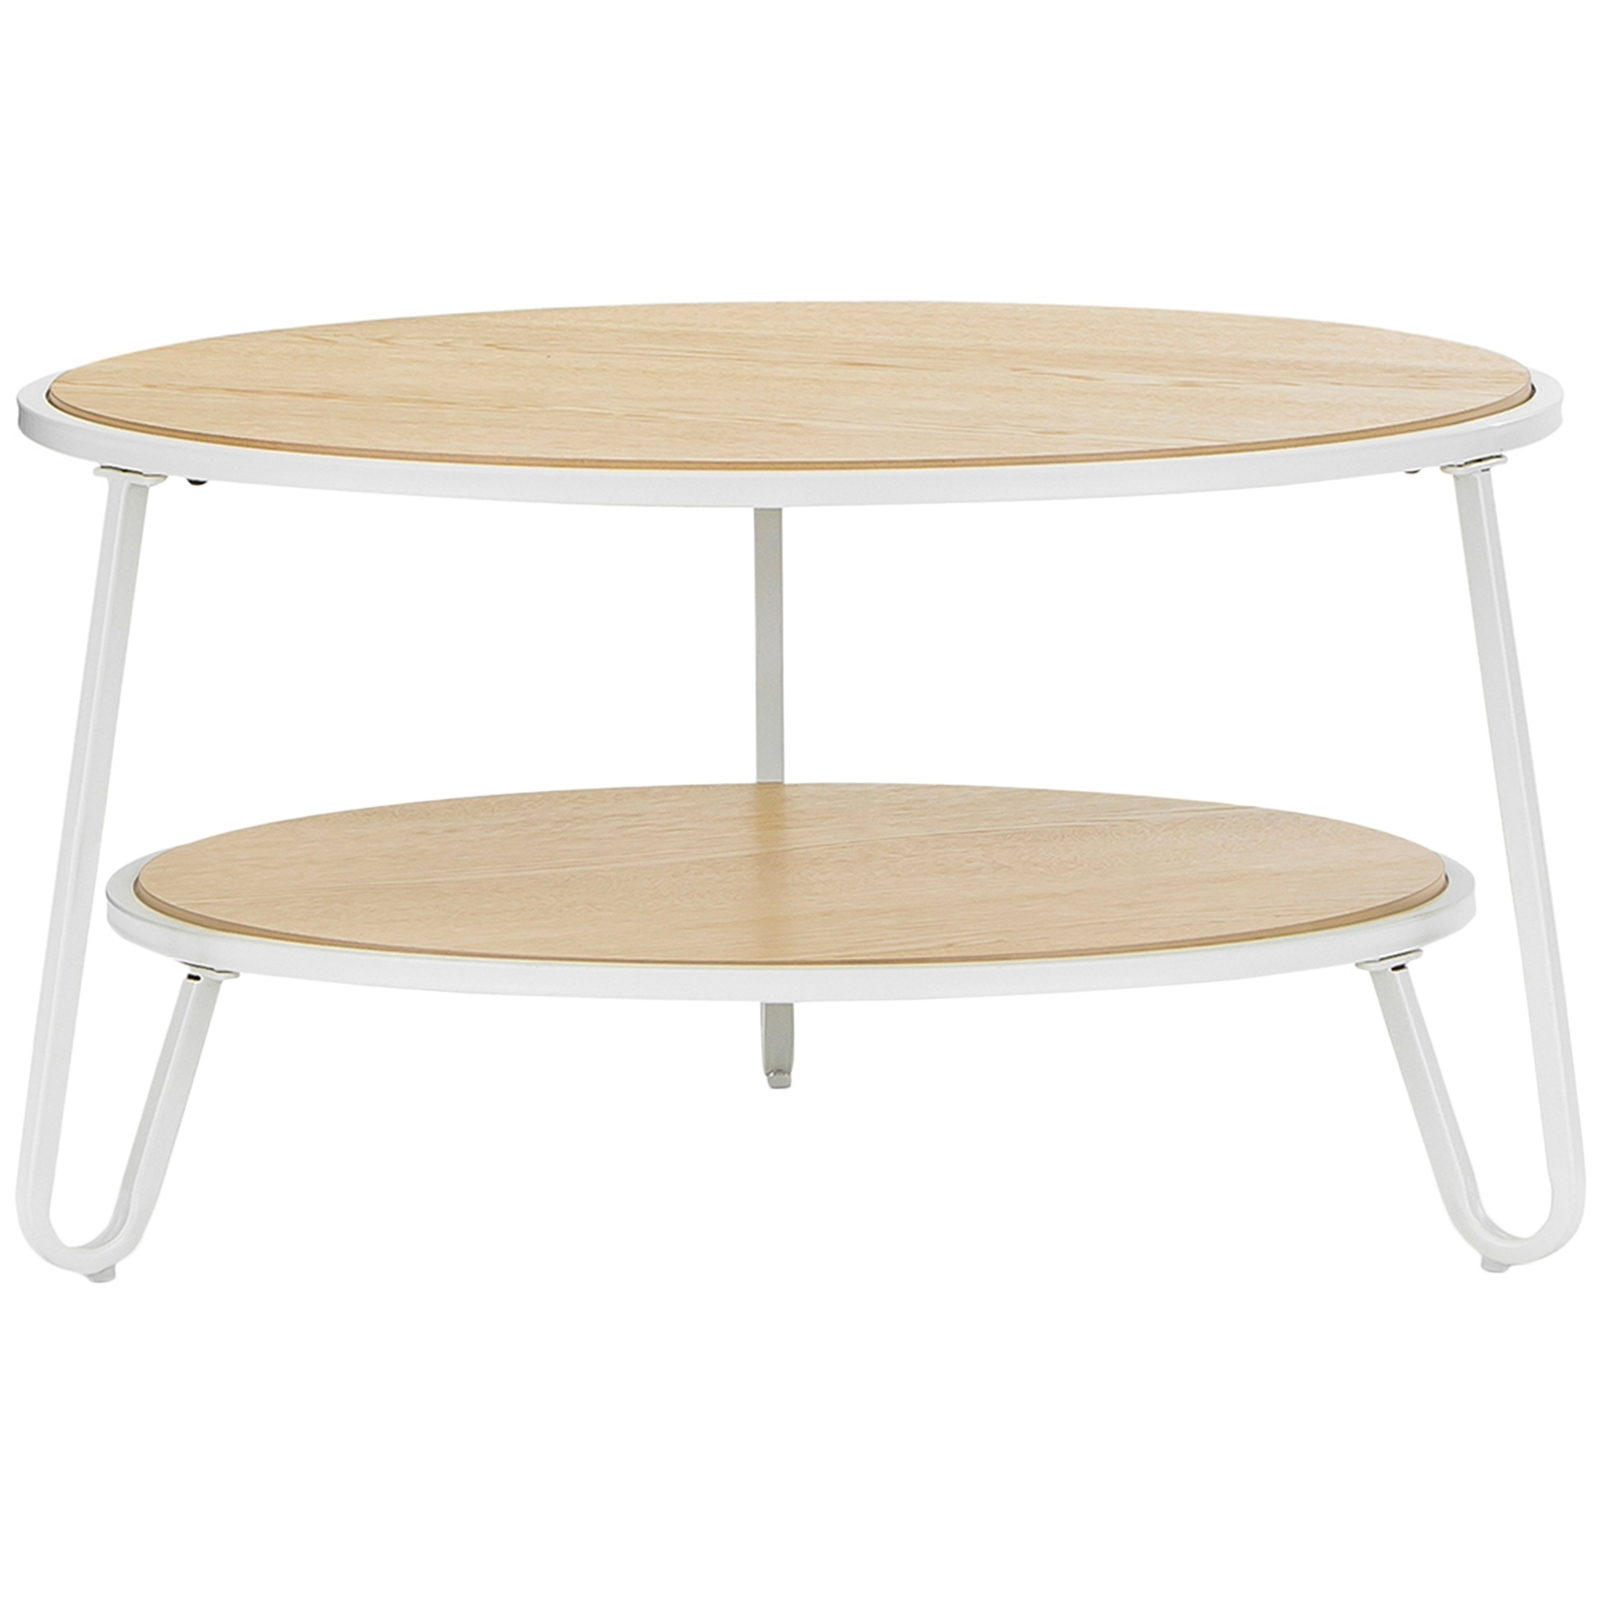 White Macy Round Coffee Table | Temple & Webster In Most Current Macie Round Dining Tables (View 14 of 20)